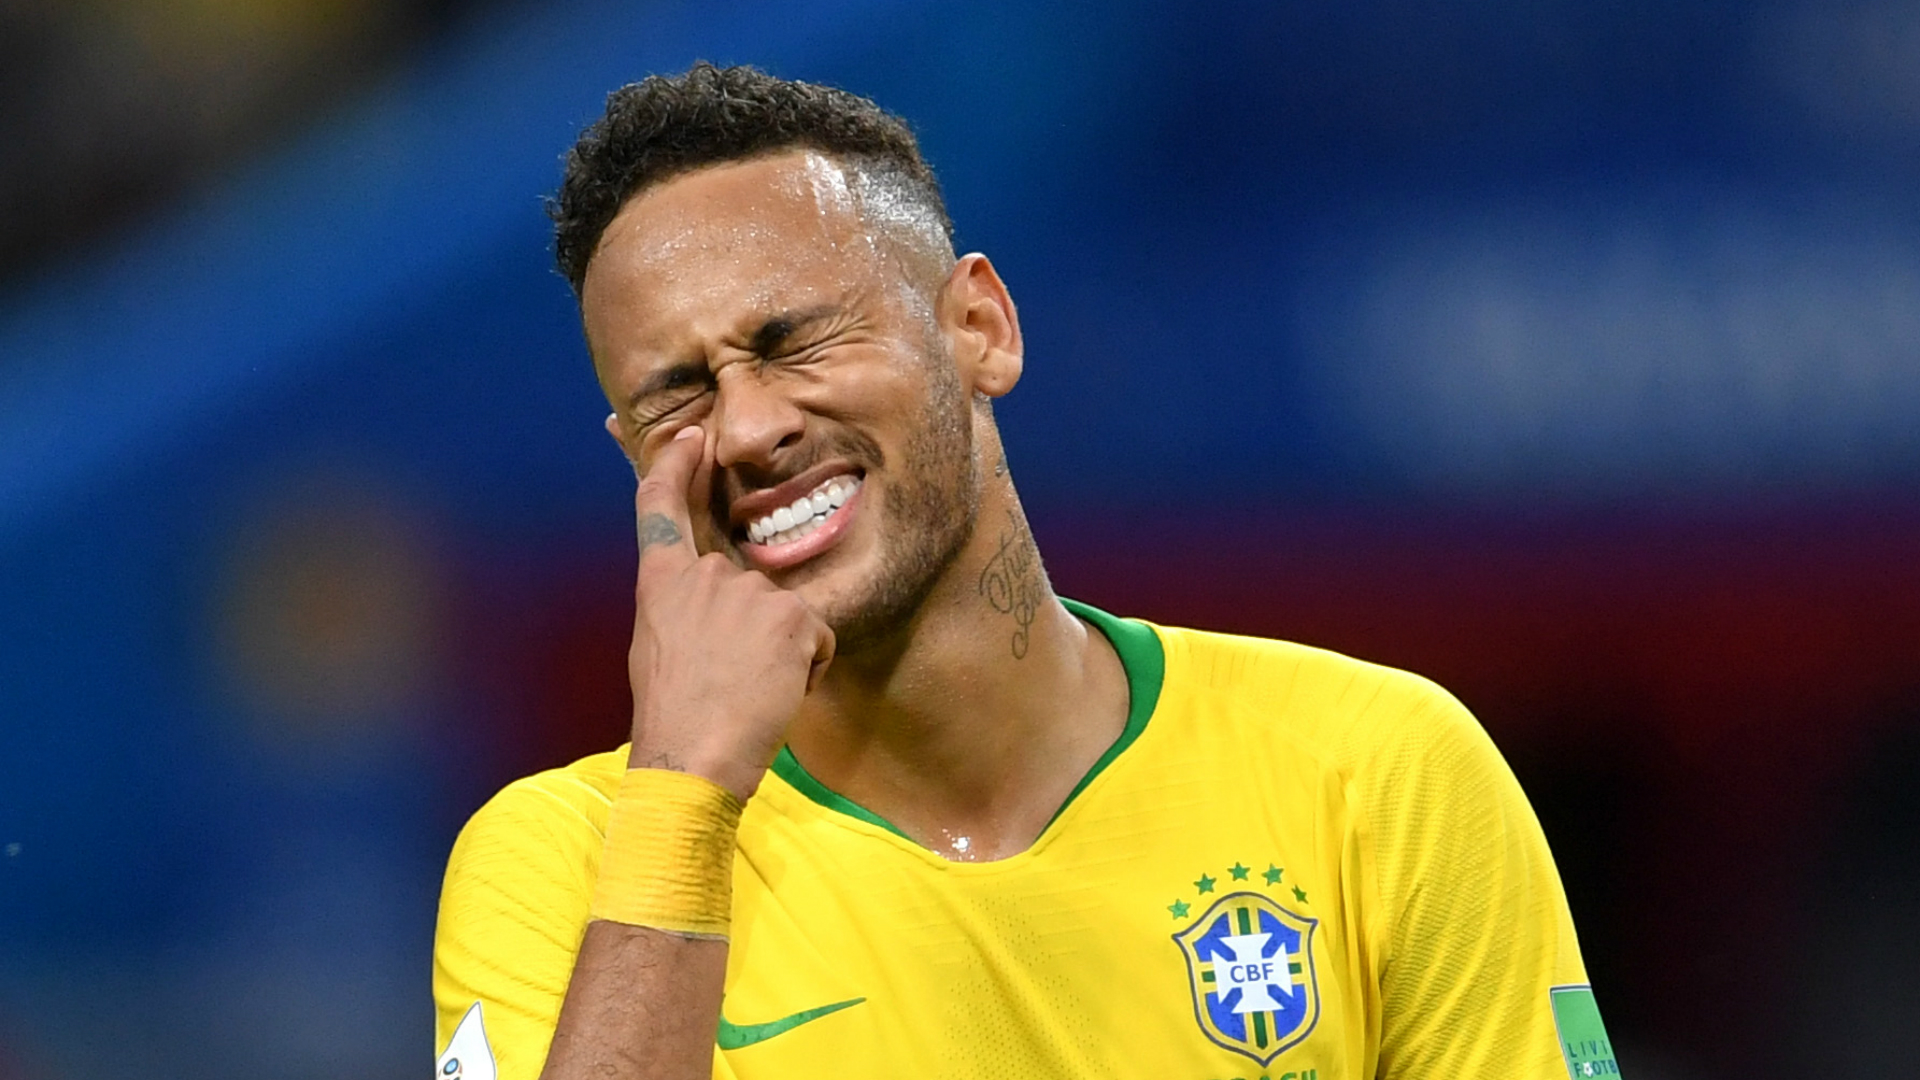 Buffon believes Neymar will recover from World Cup disappointment